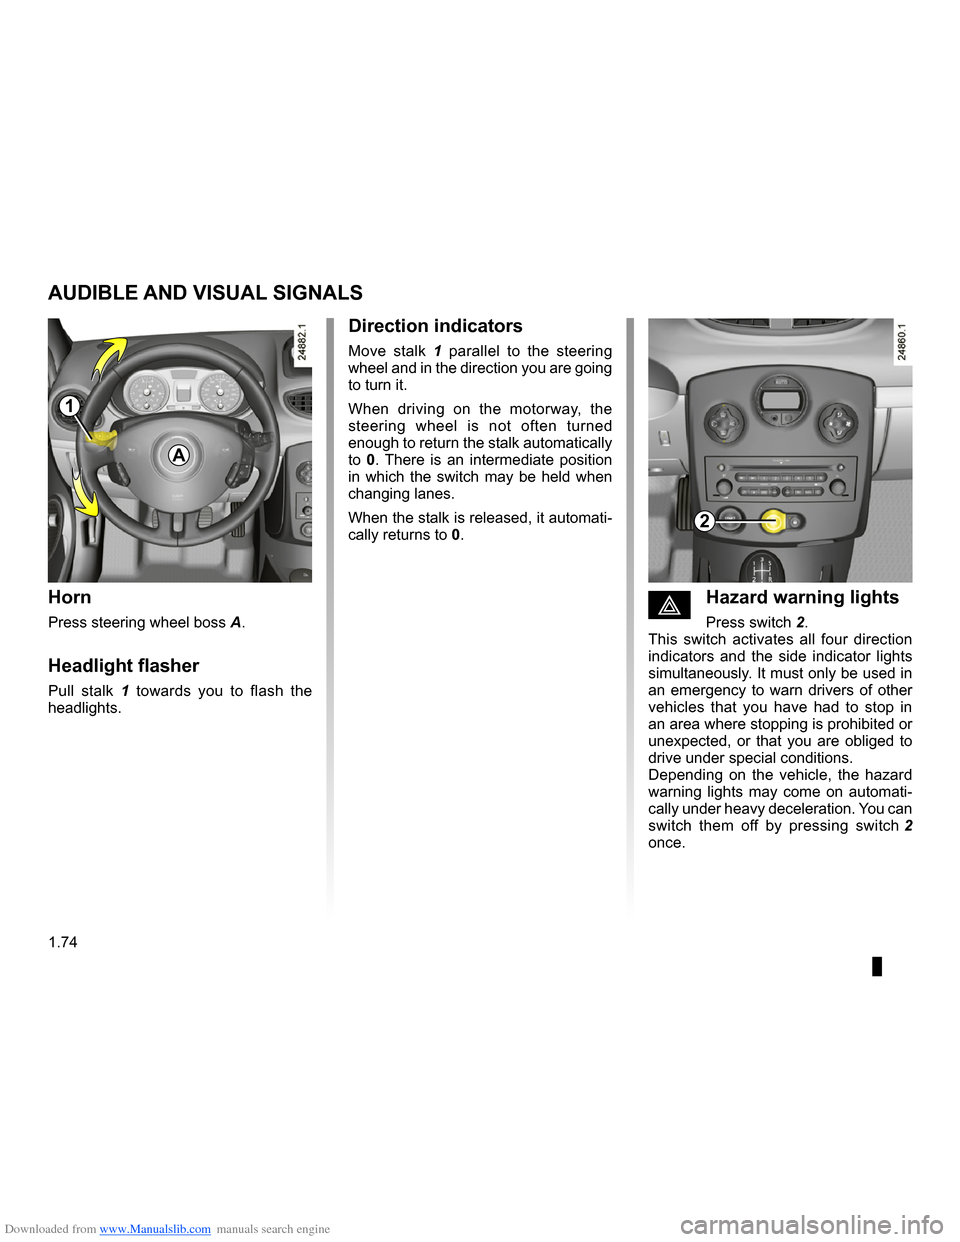 RENAULT CLIO 2009 X85 / 3.G Owners Manual, Page 80